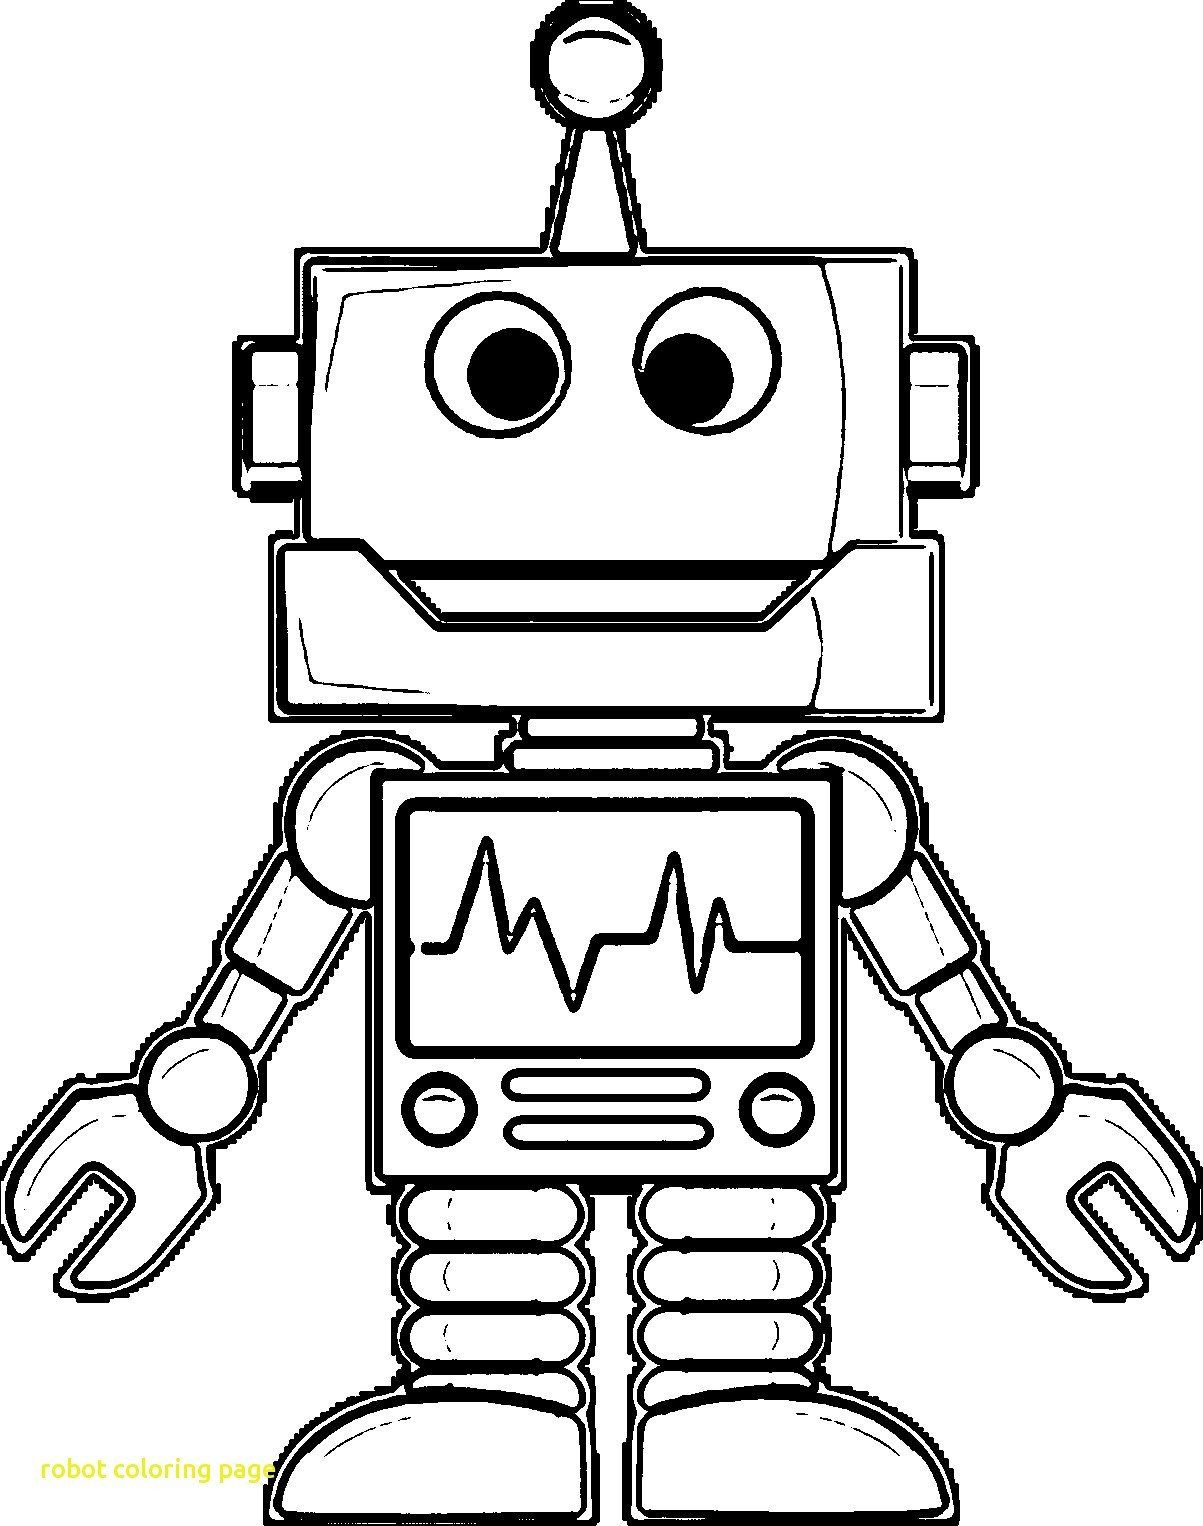 Free Easy To Print Robot Coloring Pages Robots Drawing Kids Printable Coloring Pages Cool Coloring Pages